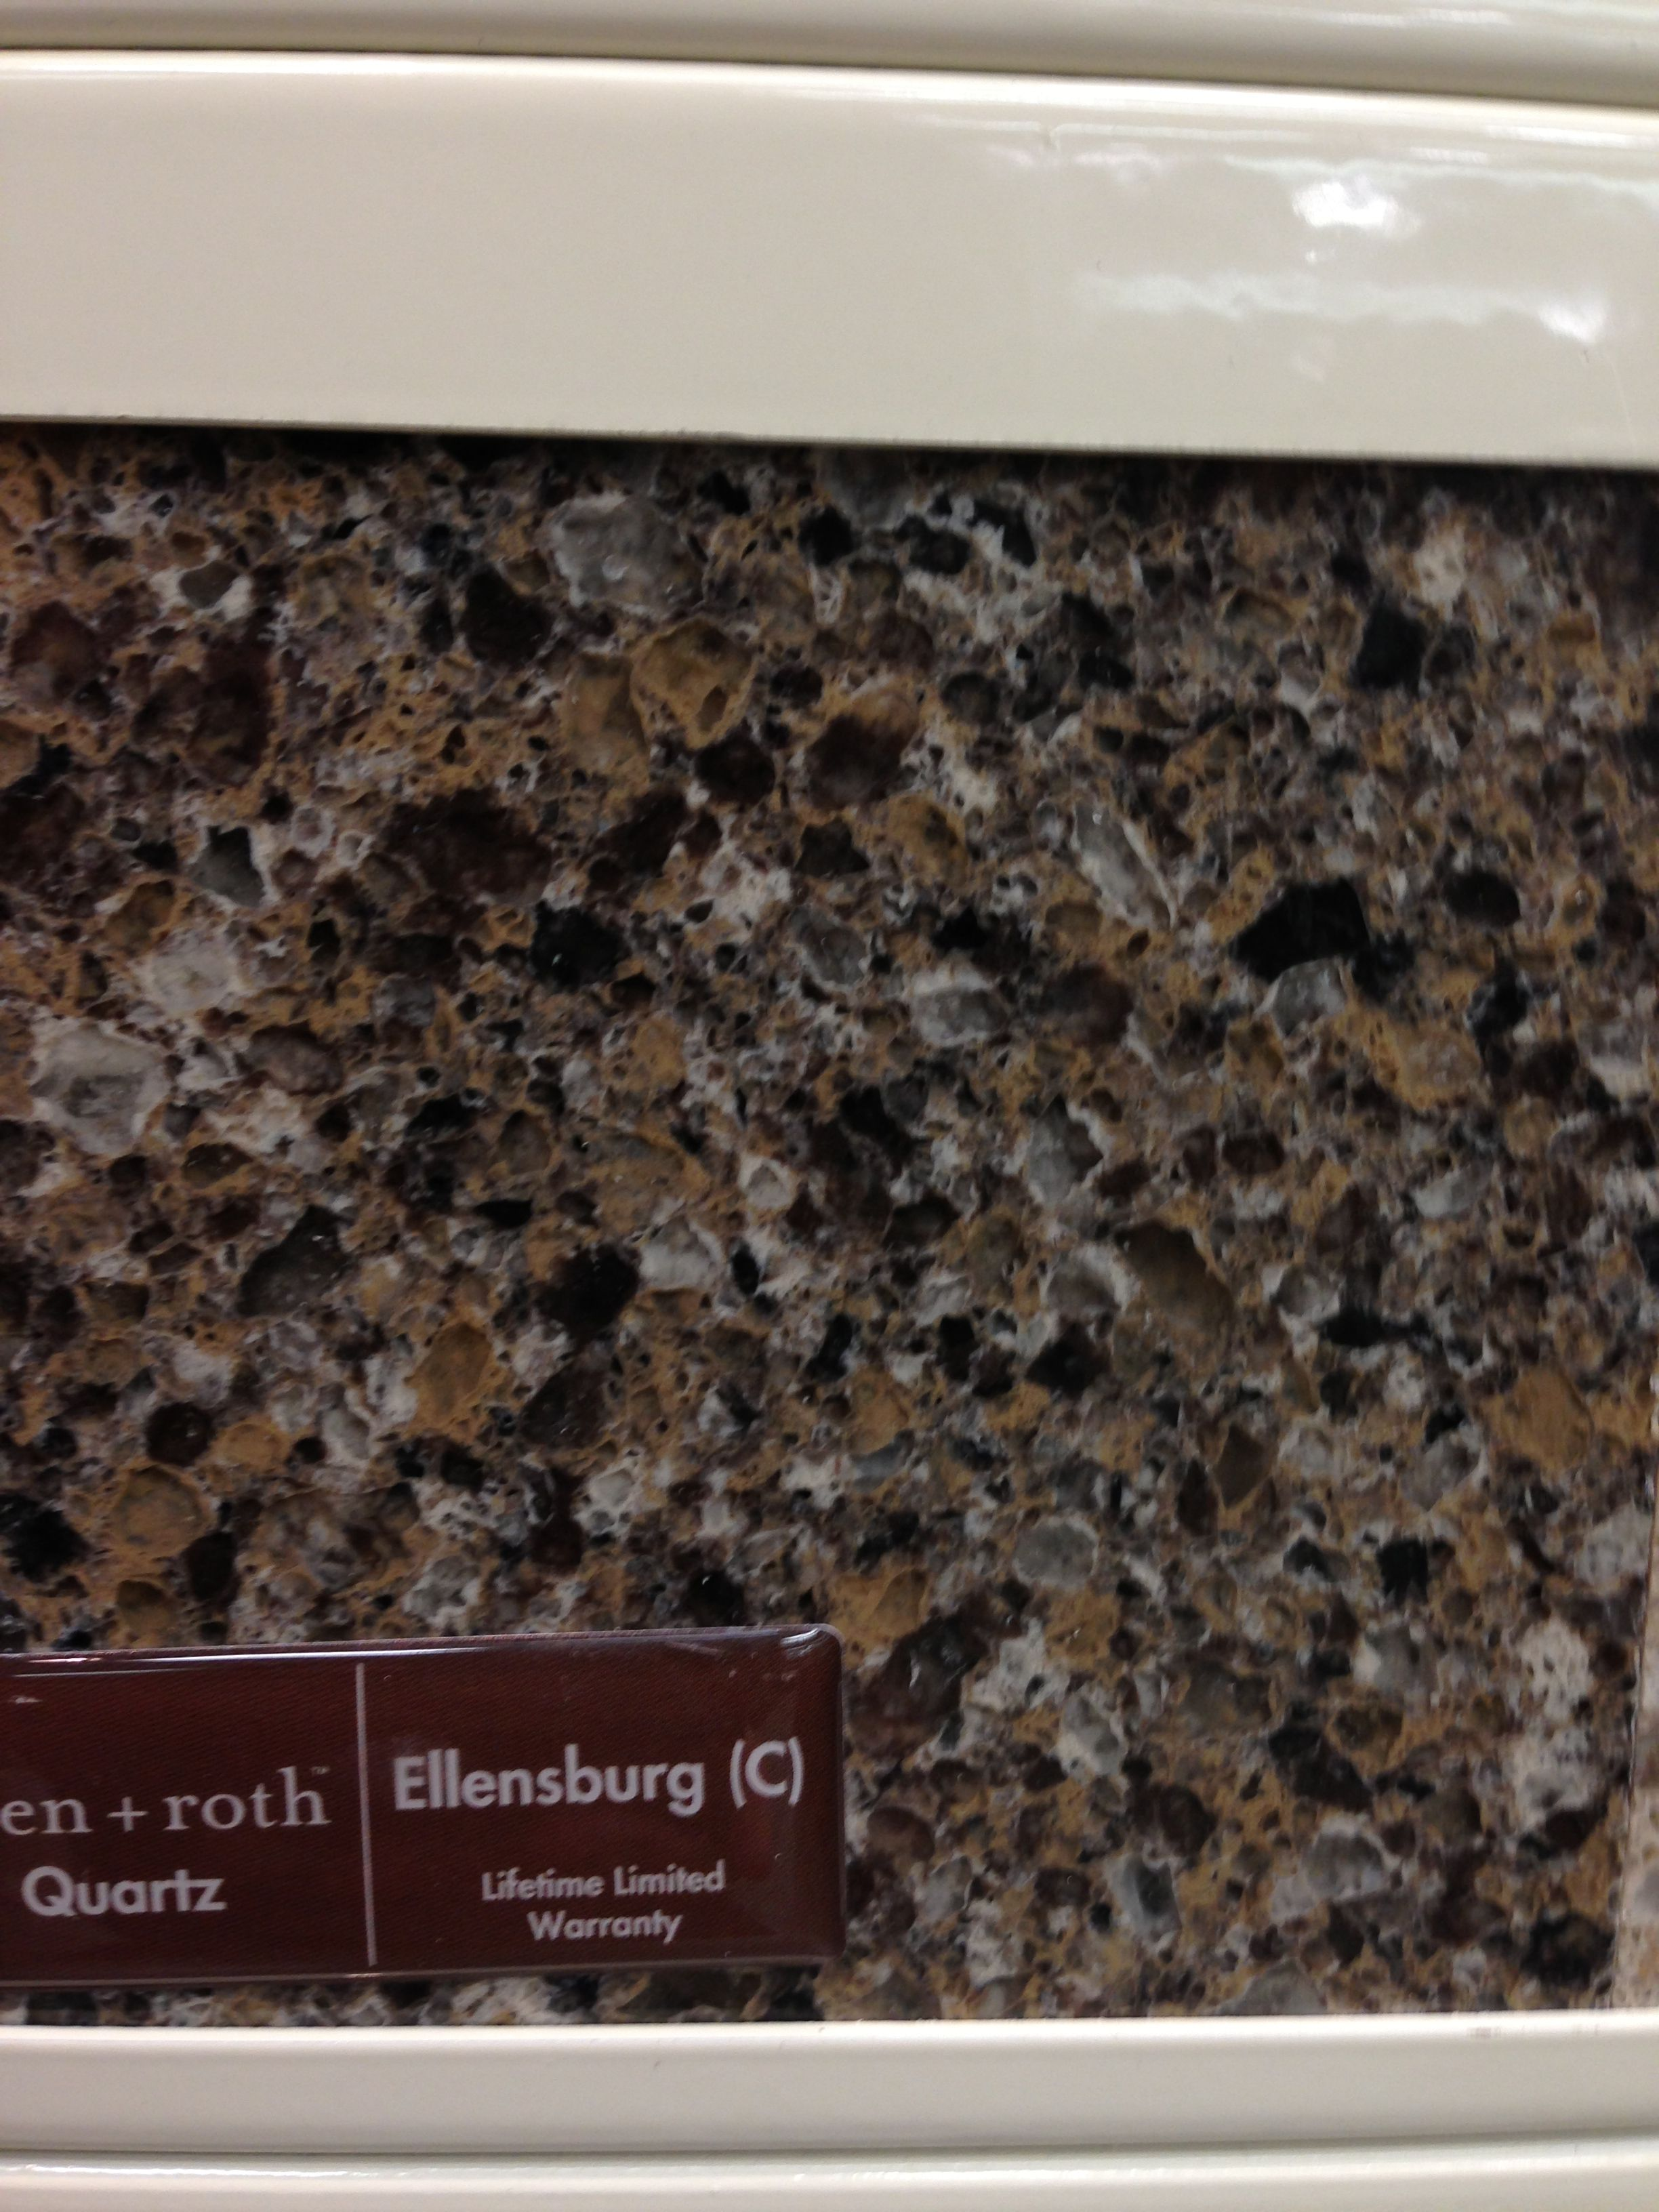 Allen Roth Quartz Countertops Ellensburg C Quartz Countertop Allen And Roth Home